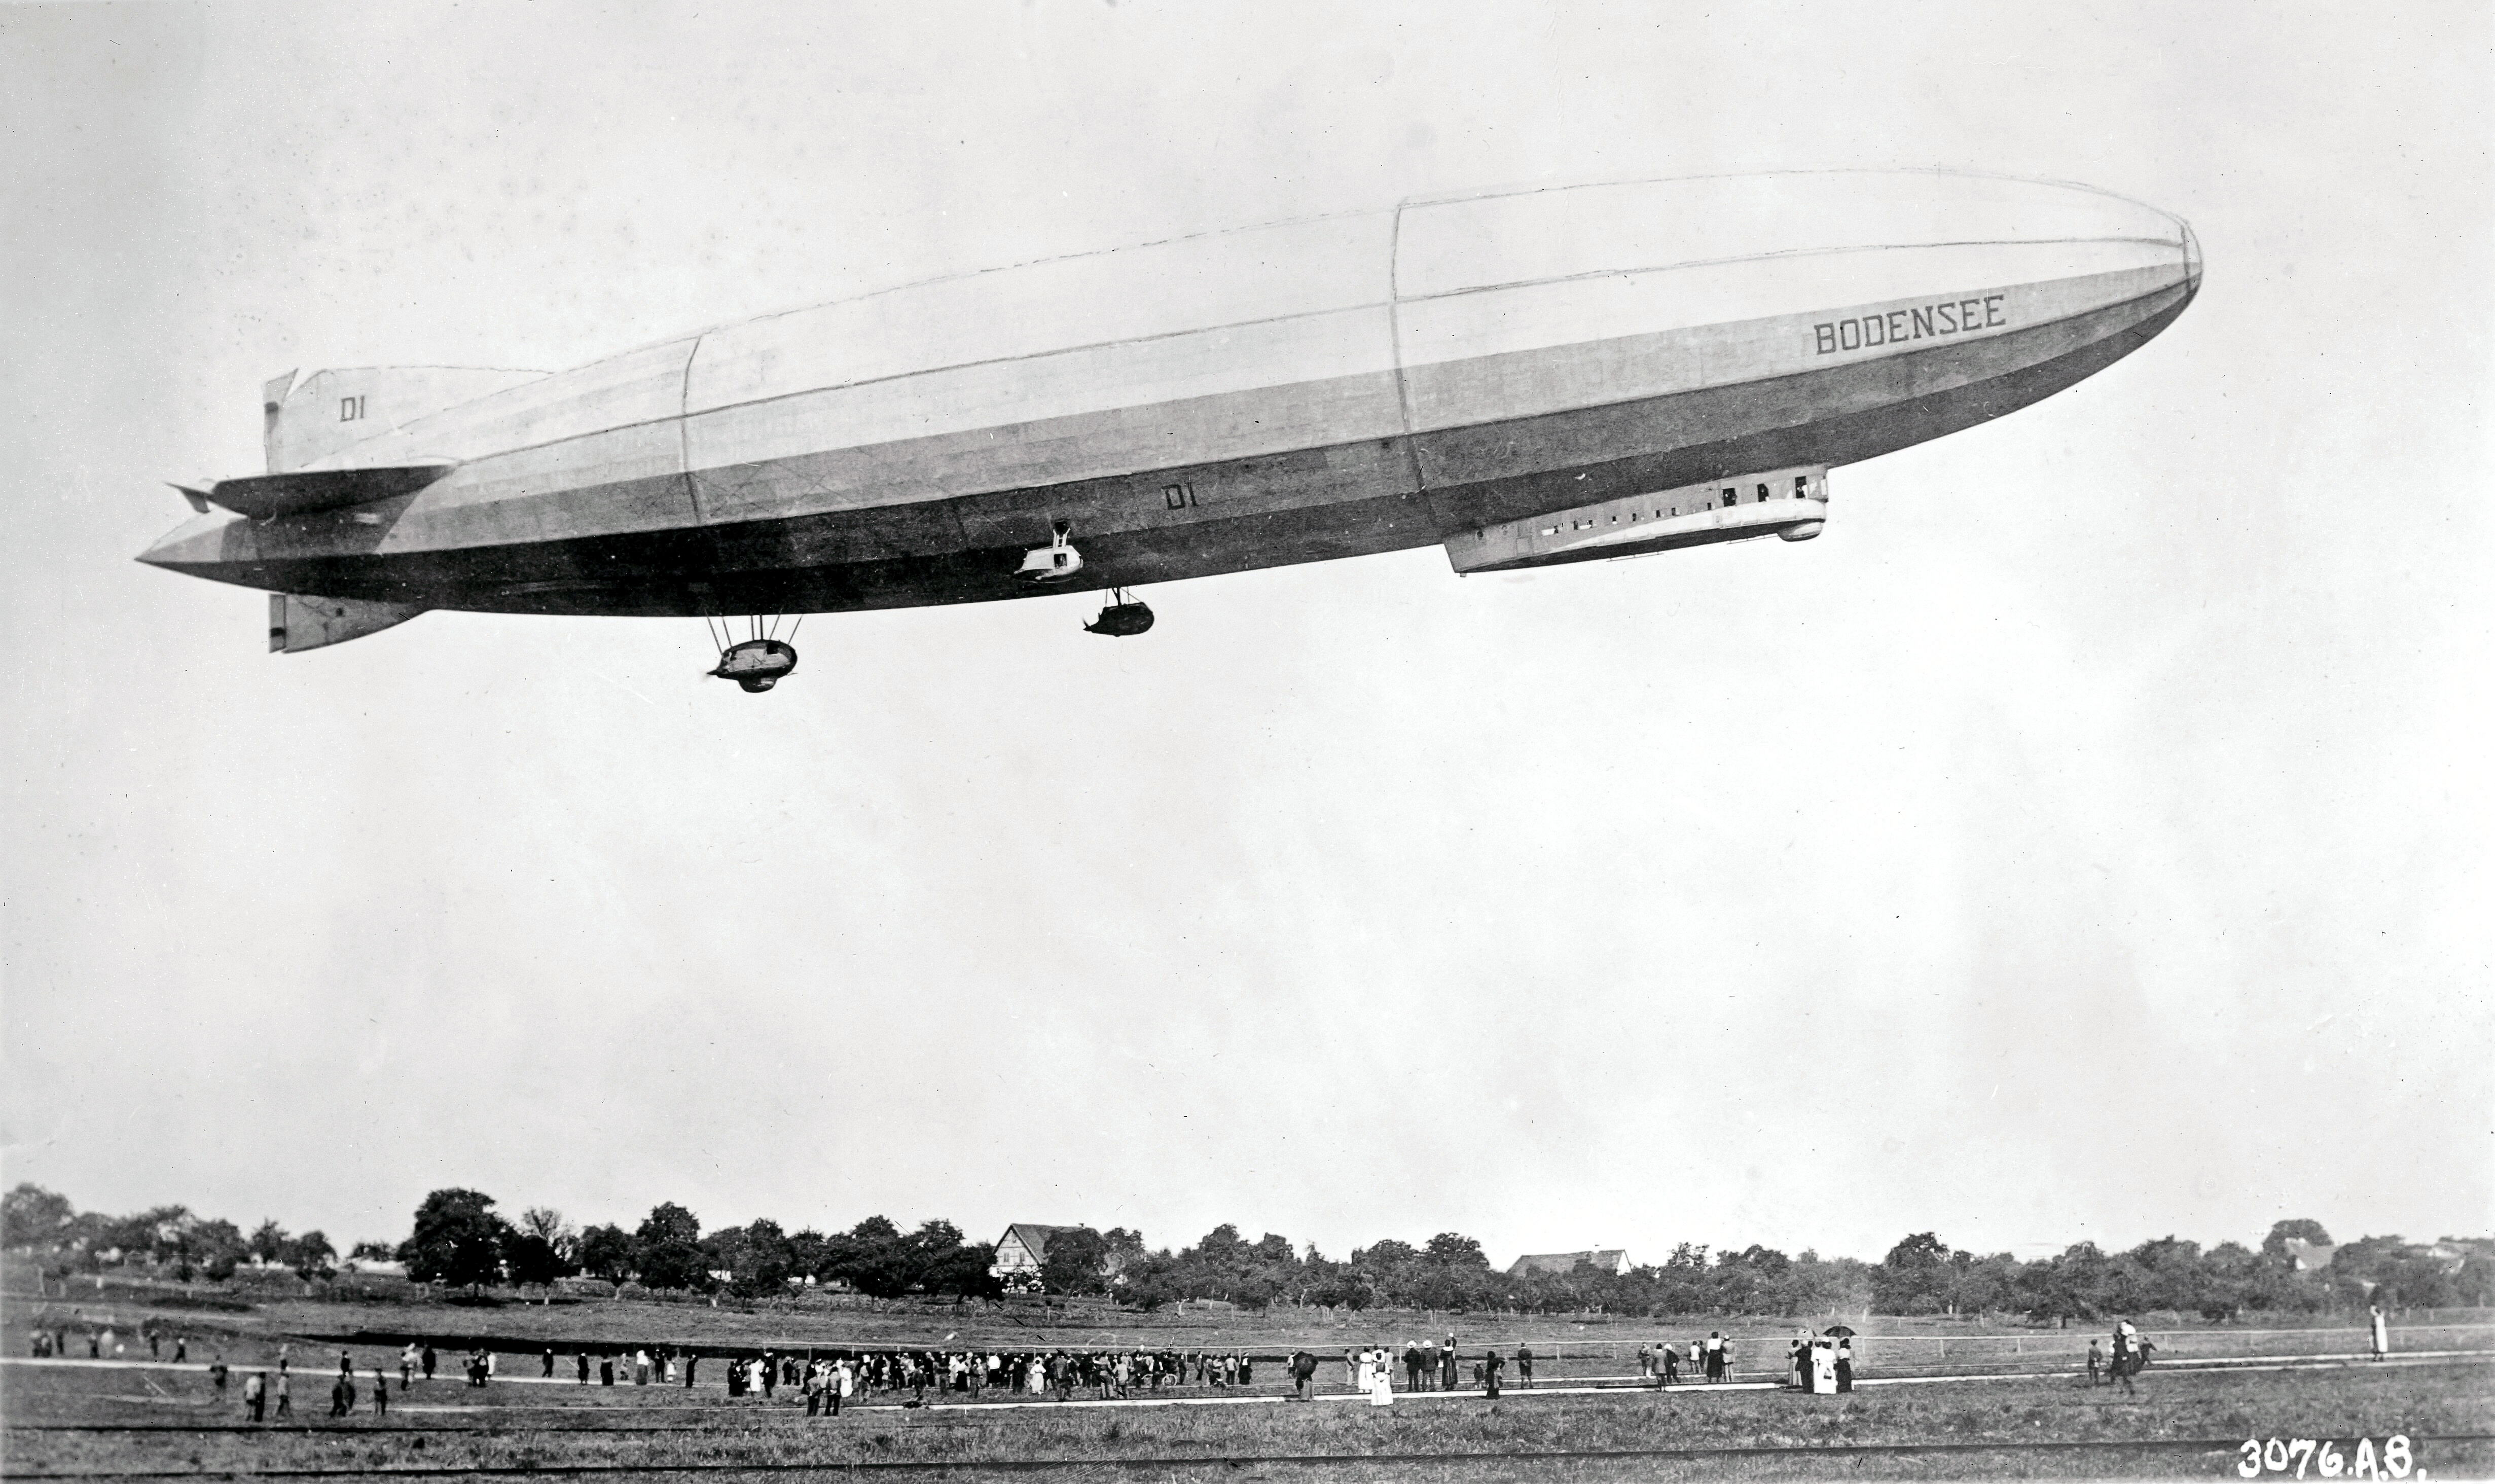 Daily Illini, 2 August 1929 — STOWAWAY FOUND ON GRAF ZEPPELIN ; ECKENER ENRAGED [ARTICLE]